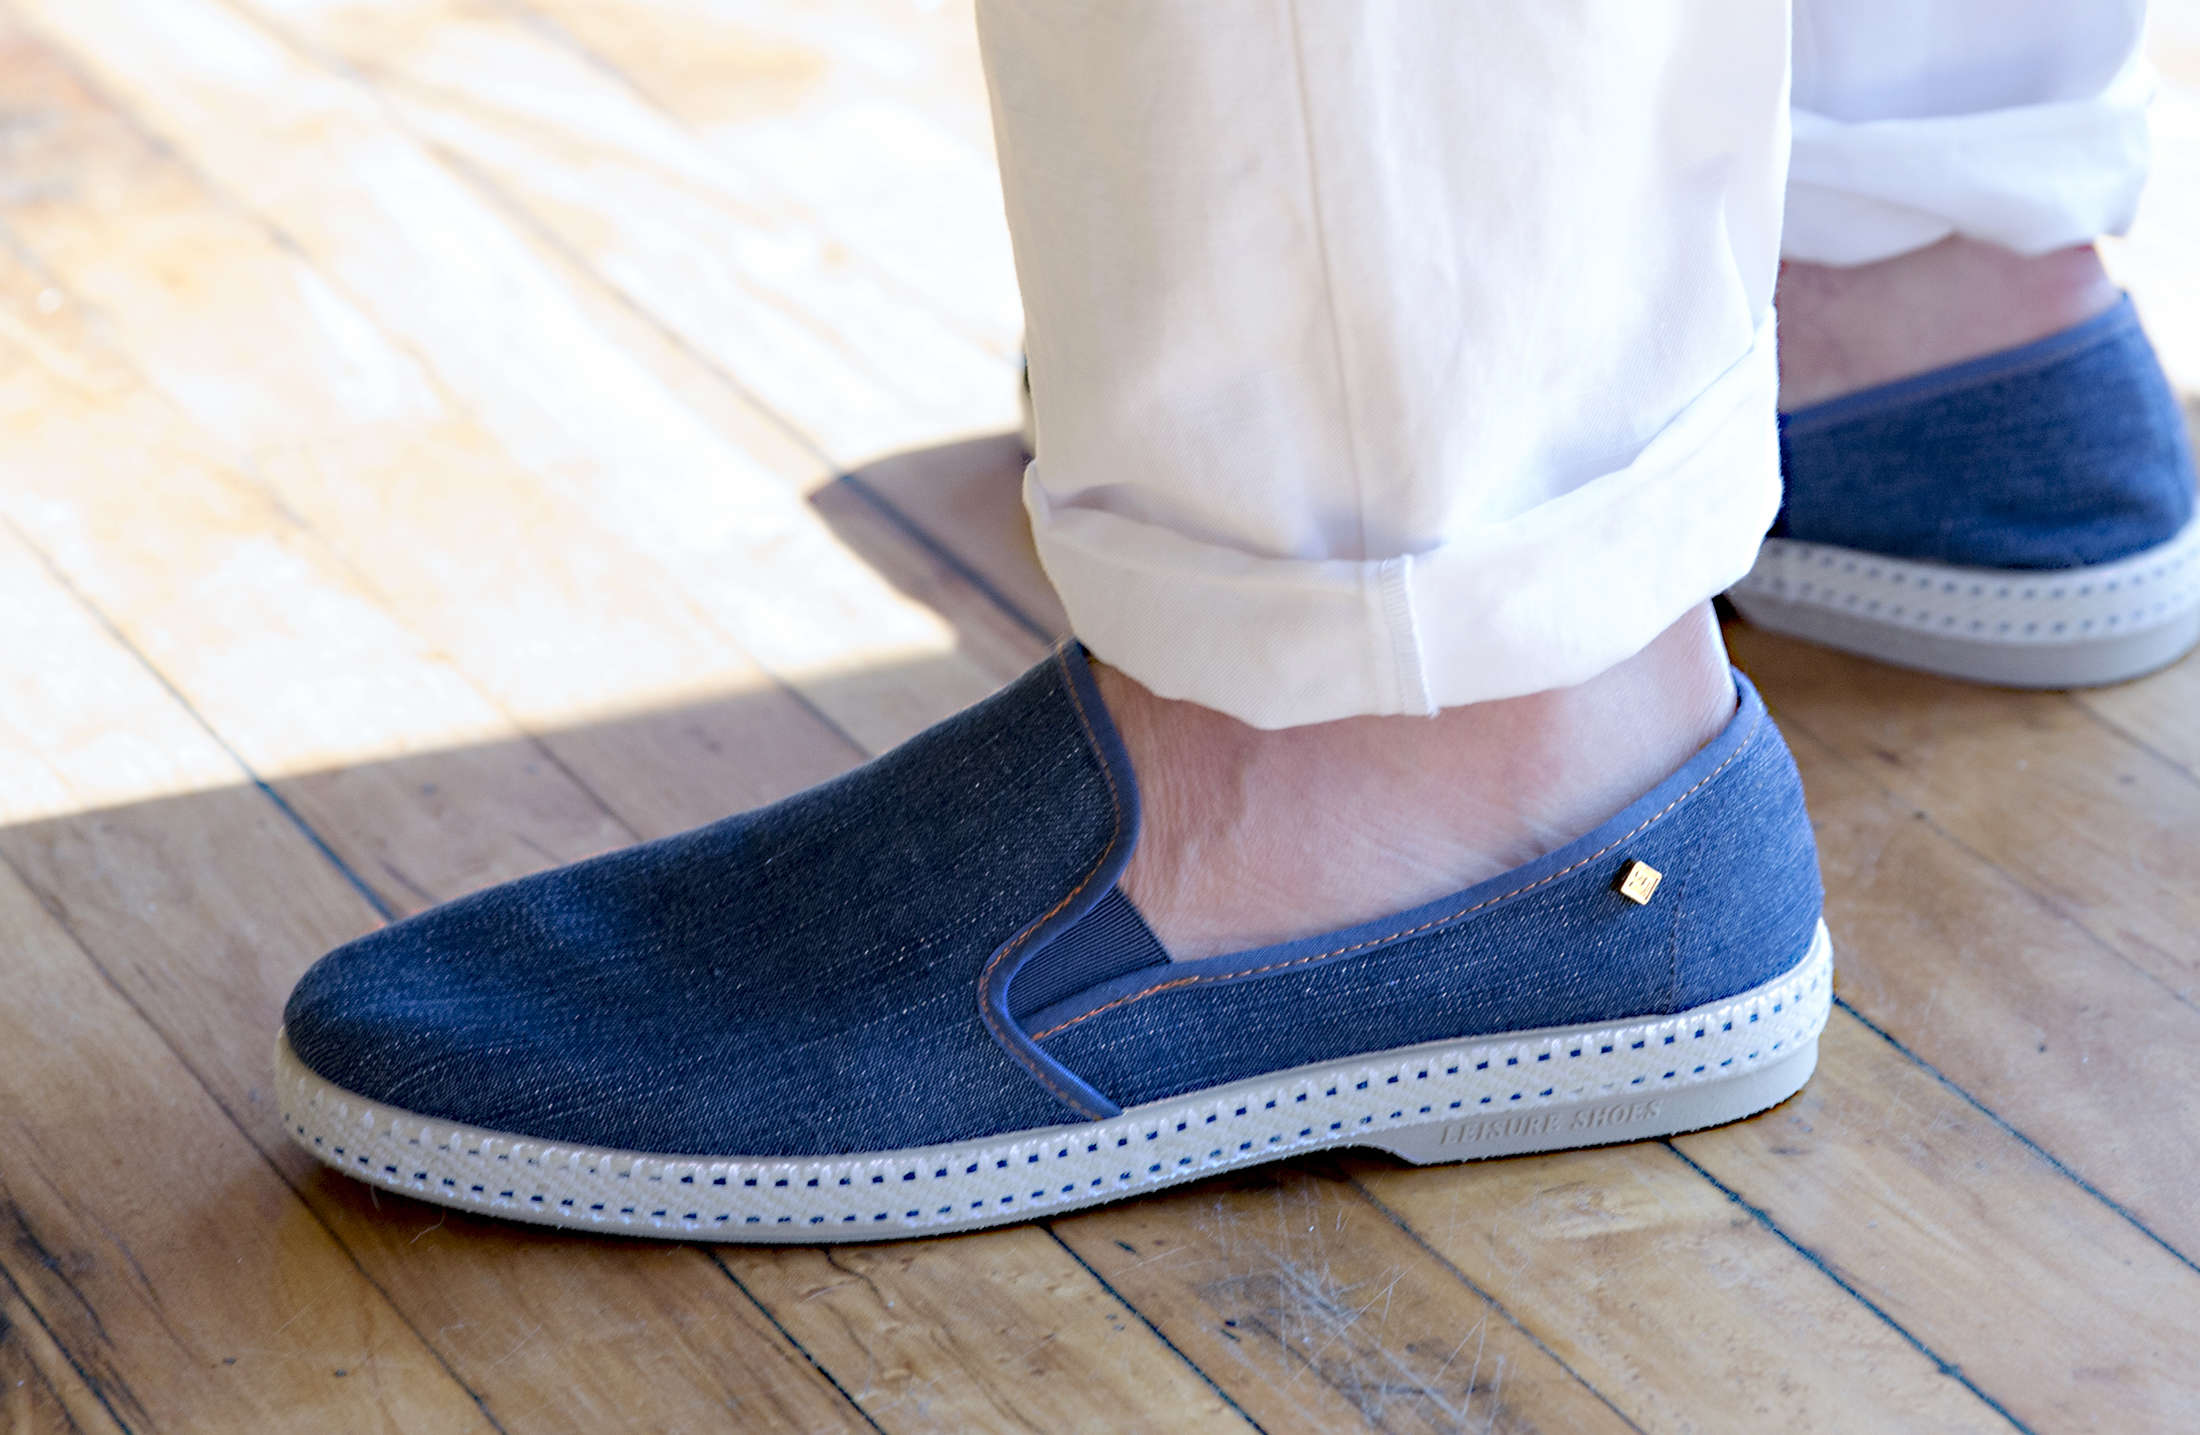 What Kind of Shoes To Wear With Linen Pants